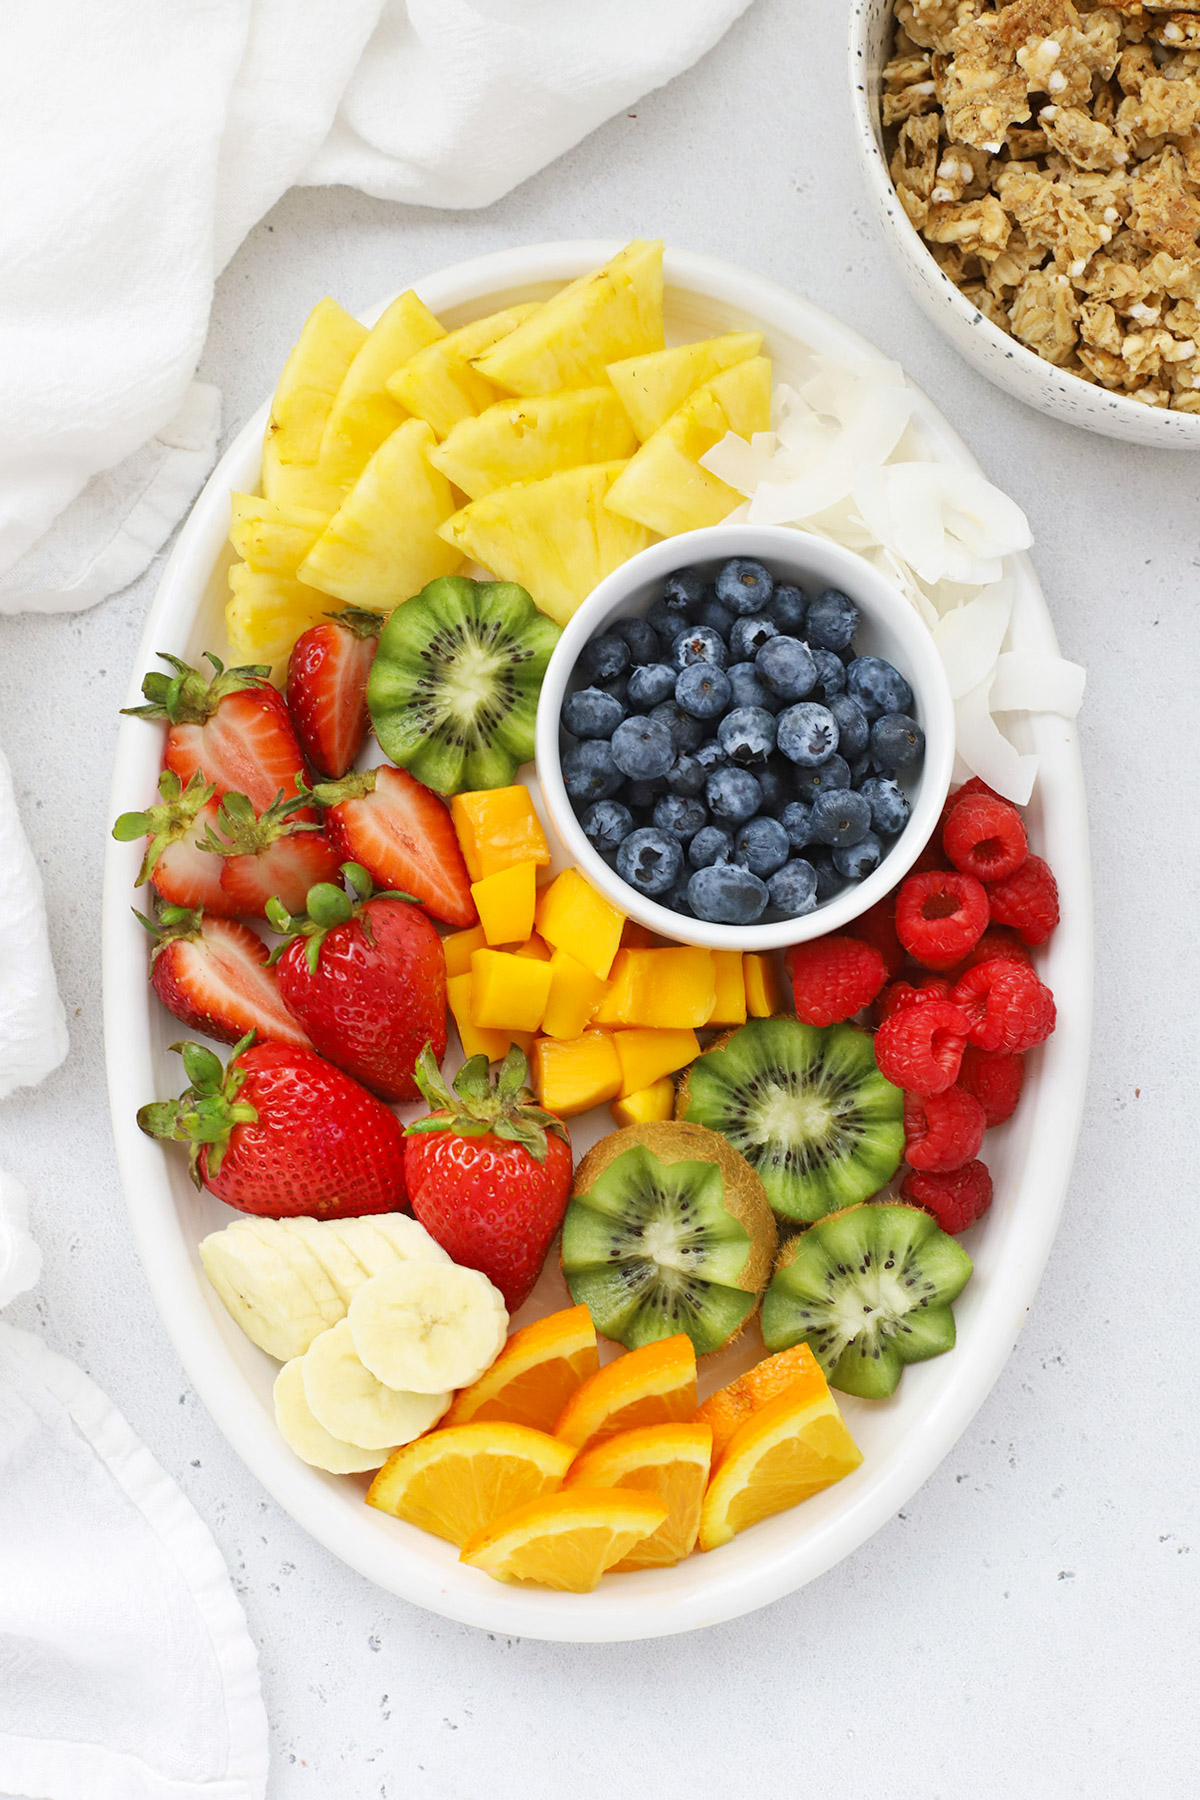 Overhead view of a fruit plate with colorful fruit, ready to top pineapple acai bowls